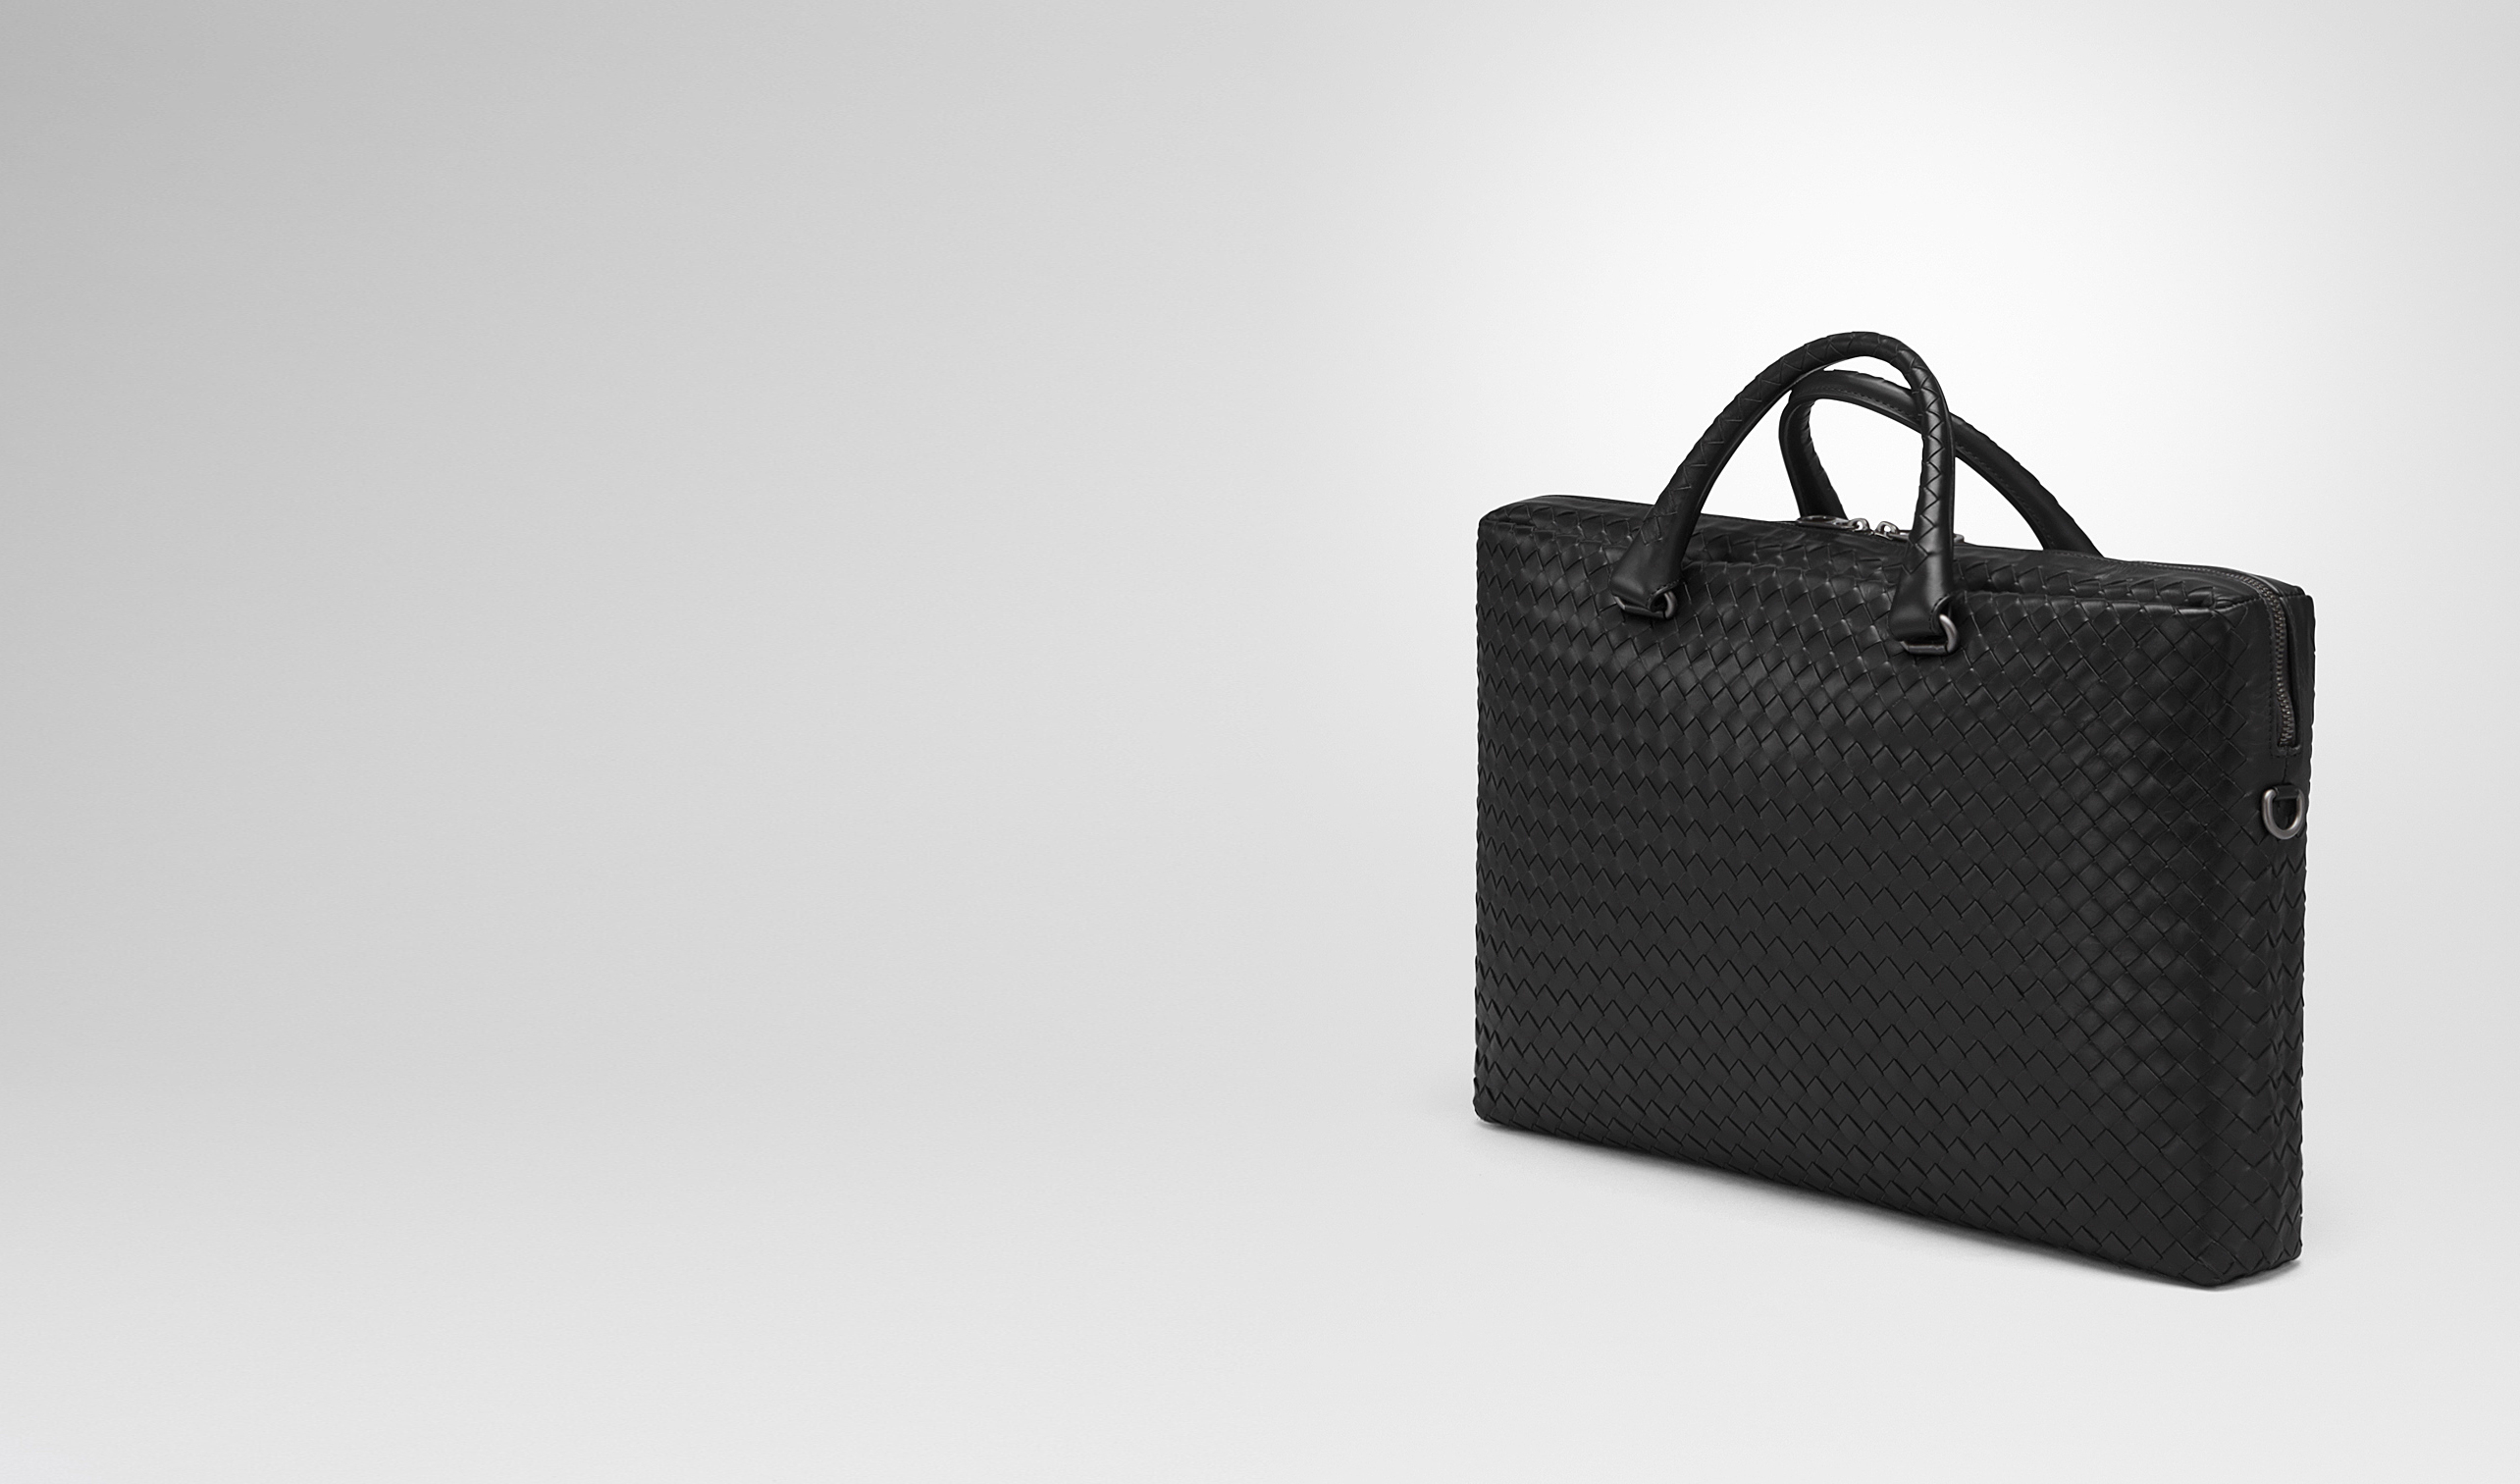 BOTTEGA VENETA Business Tasche U AKTENTASCHE AUS INTRECCIATO KALBSLEDER IN NERO pl